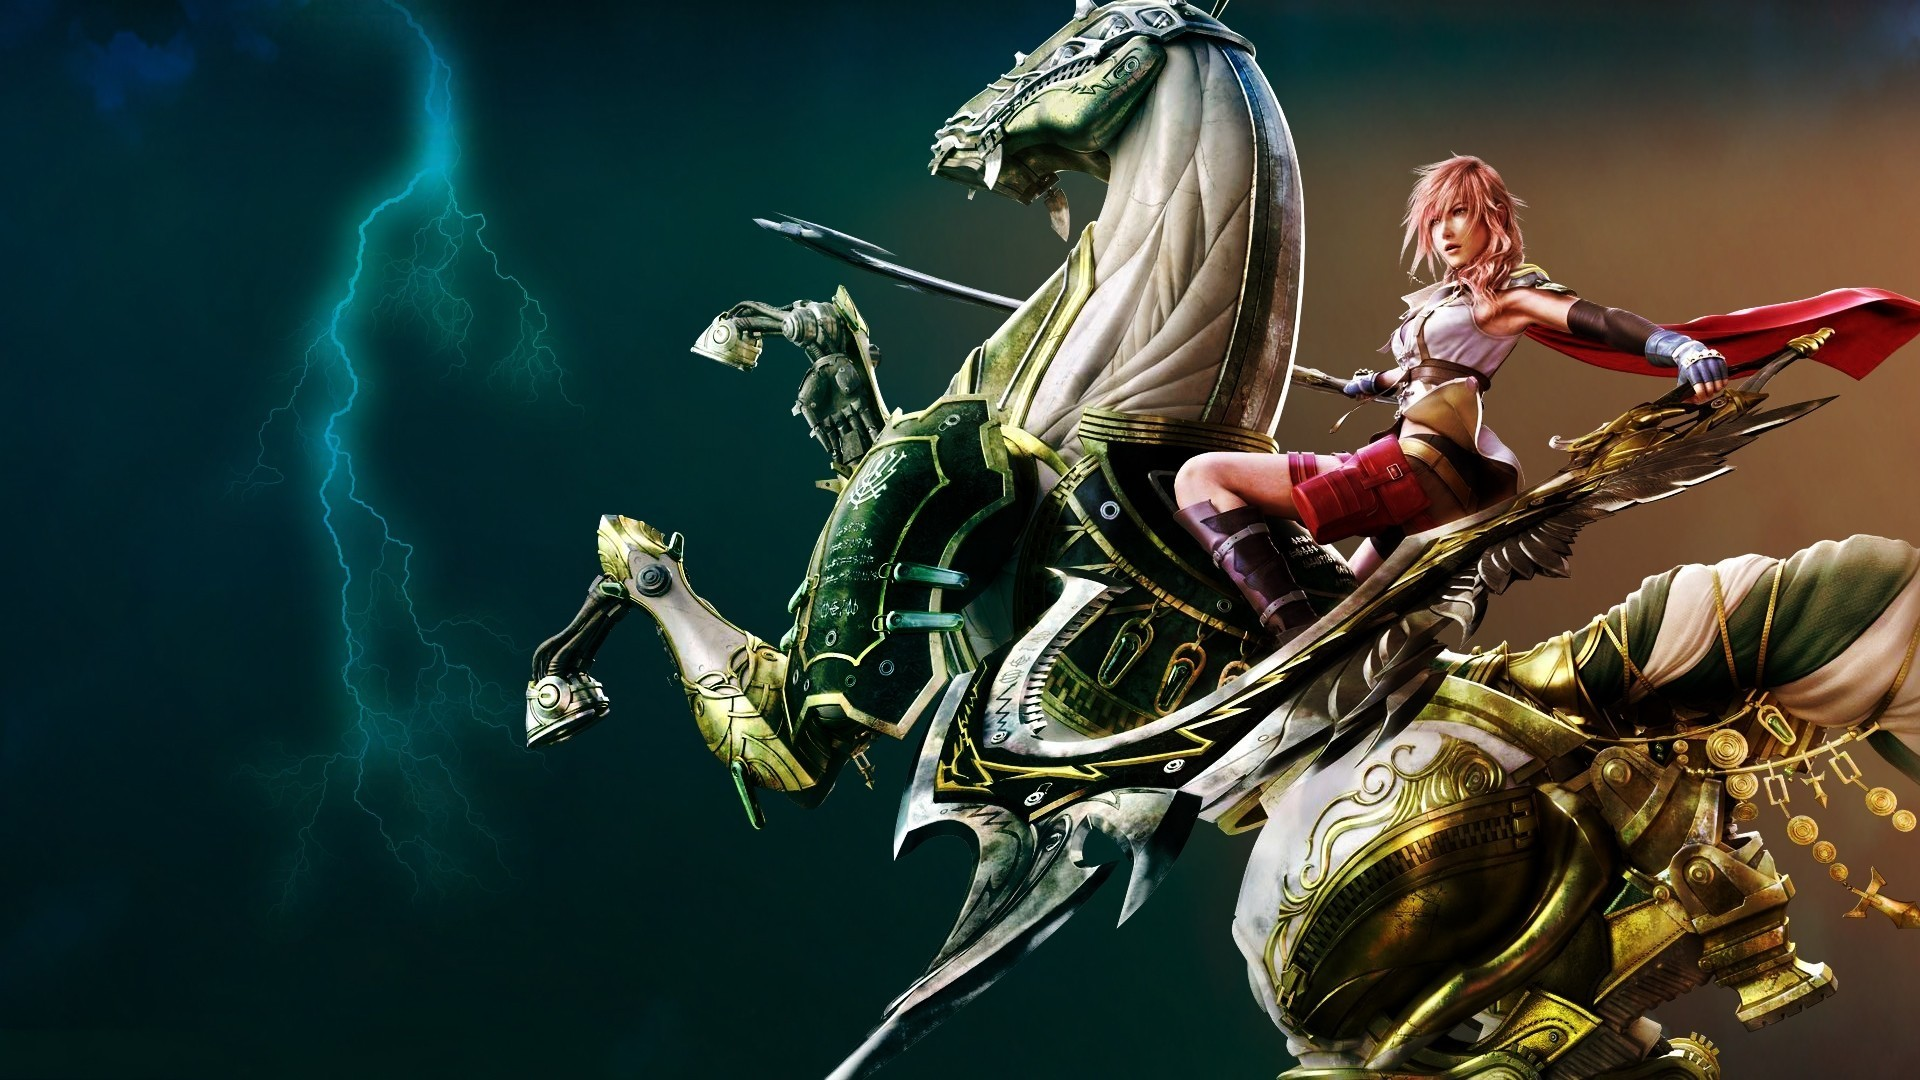 1920x1080 25+ schöne Final fantasy wallpaper hd Ideen auf Pinterest | Final fantasy 3